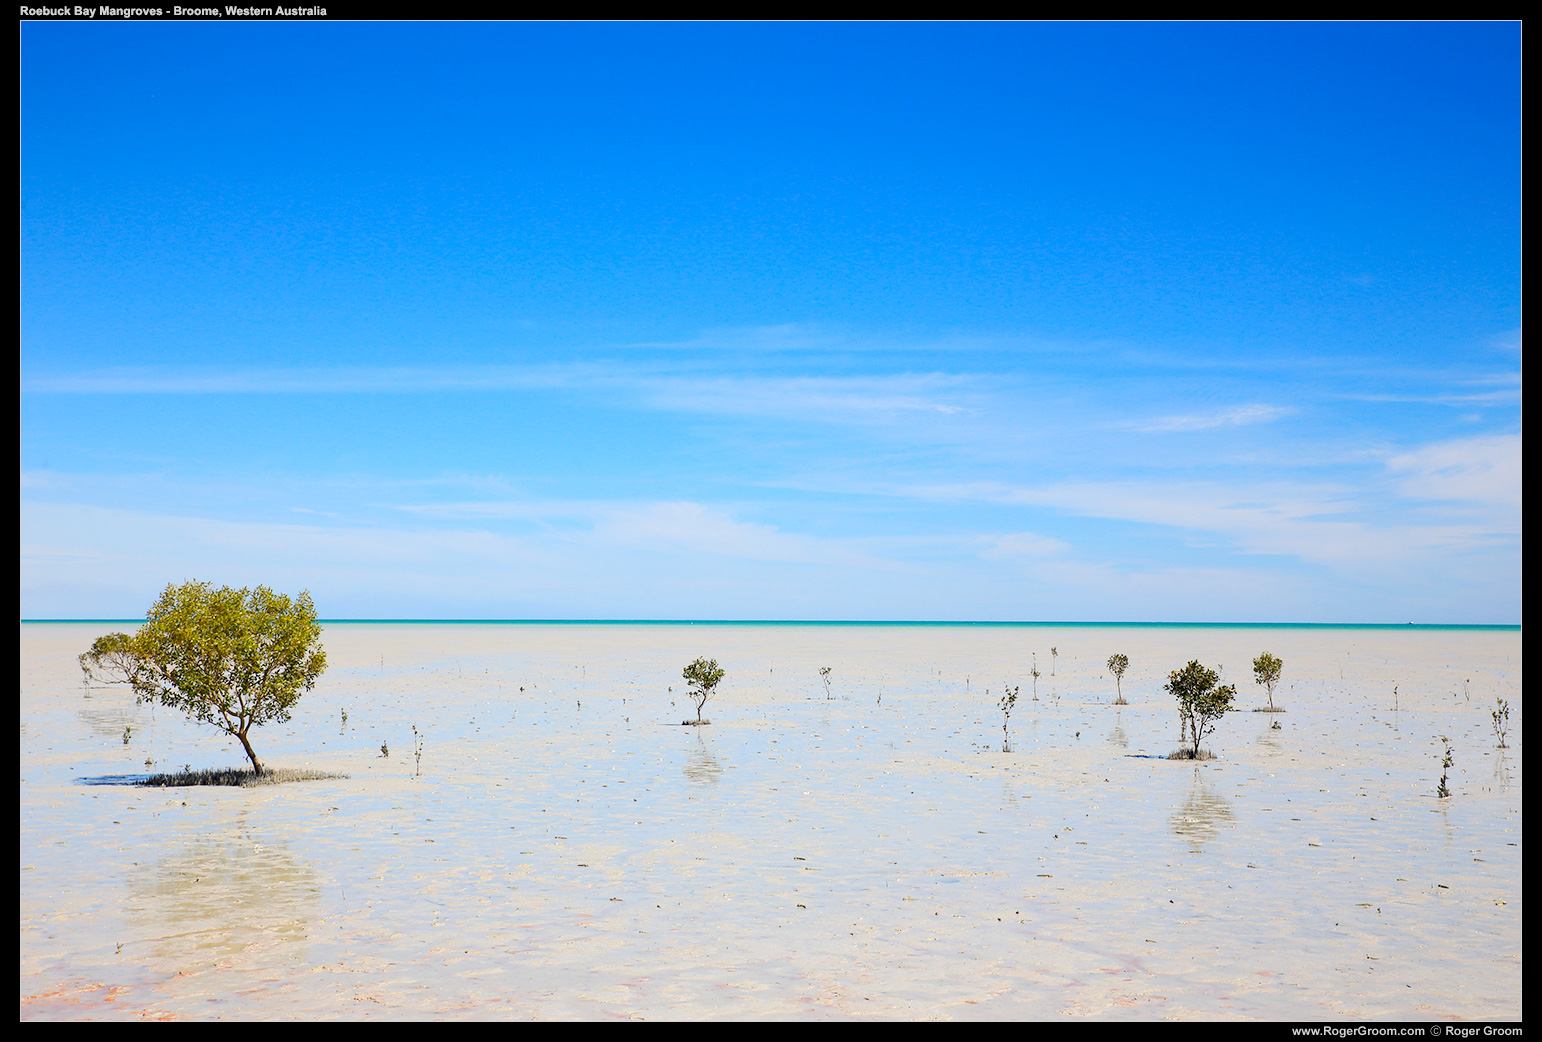 Roebuck Bay Mangroves under the clear blue sky of Broome, Western Australia